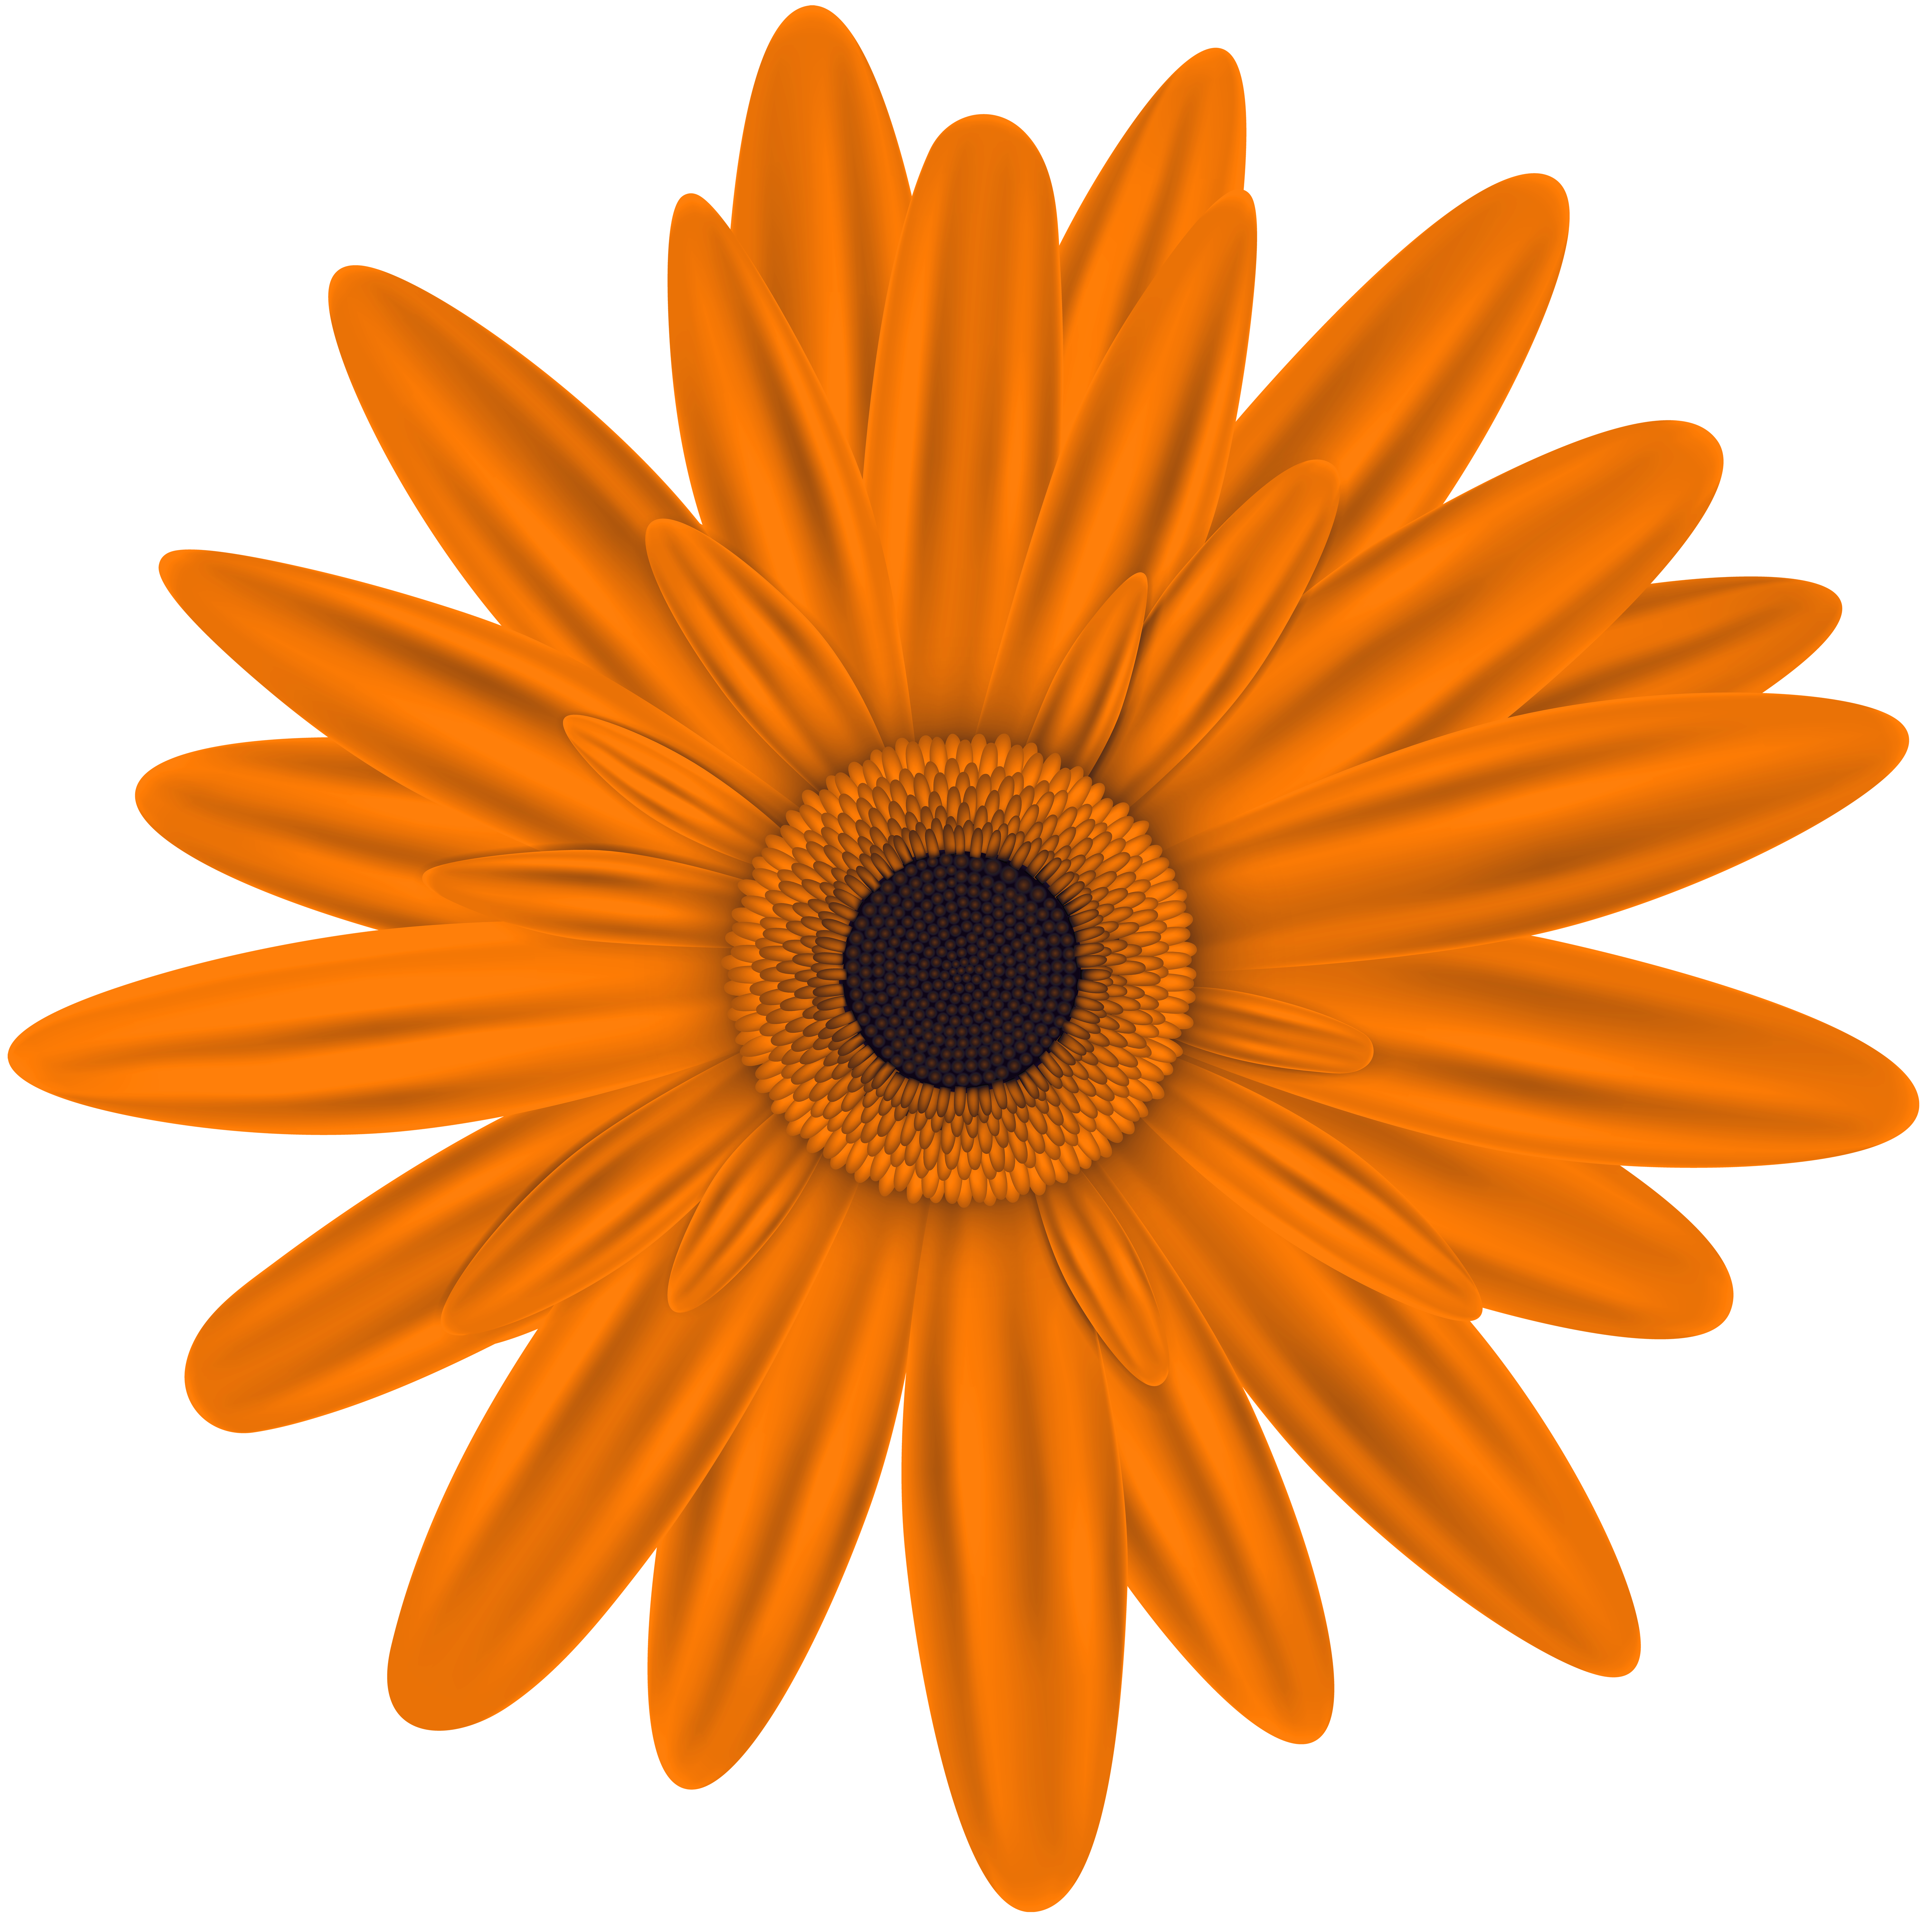 Marigold flower clipart clipart royalty free stock Orange Flower Clip Art PNG Image | Gallery Yopriceville - High ... clipart royalty free stock